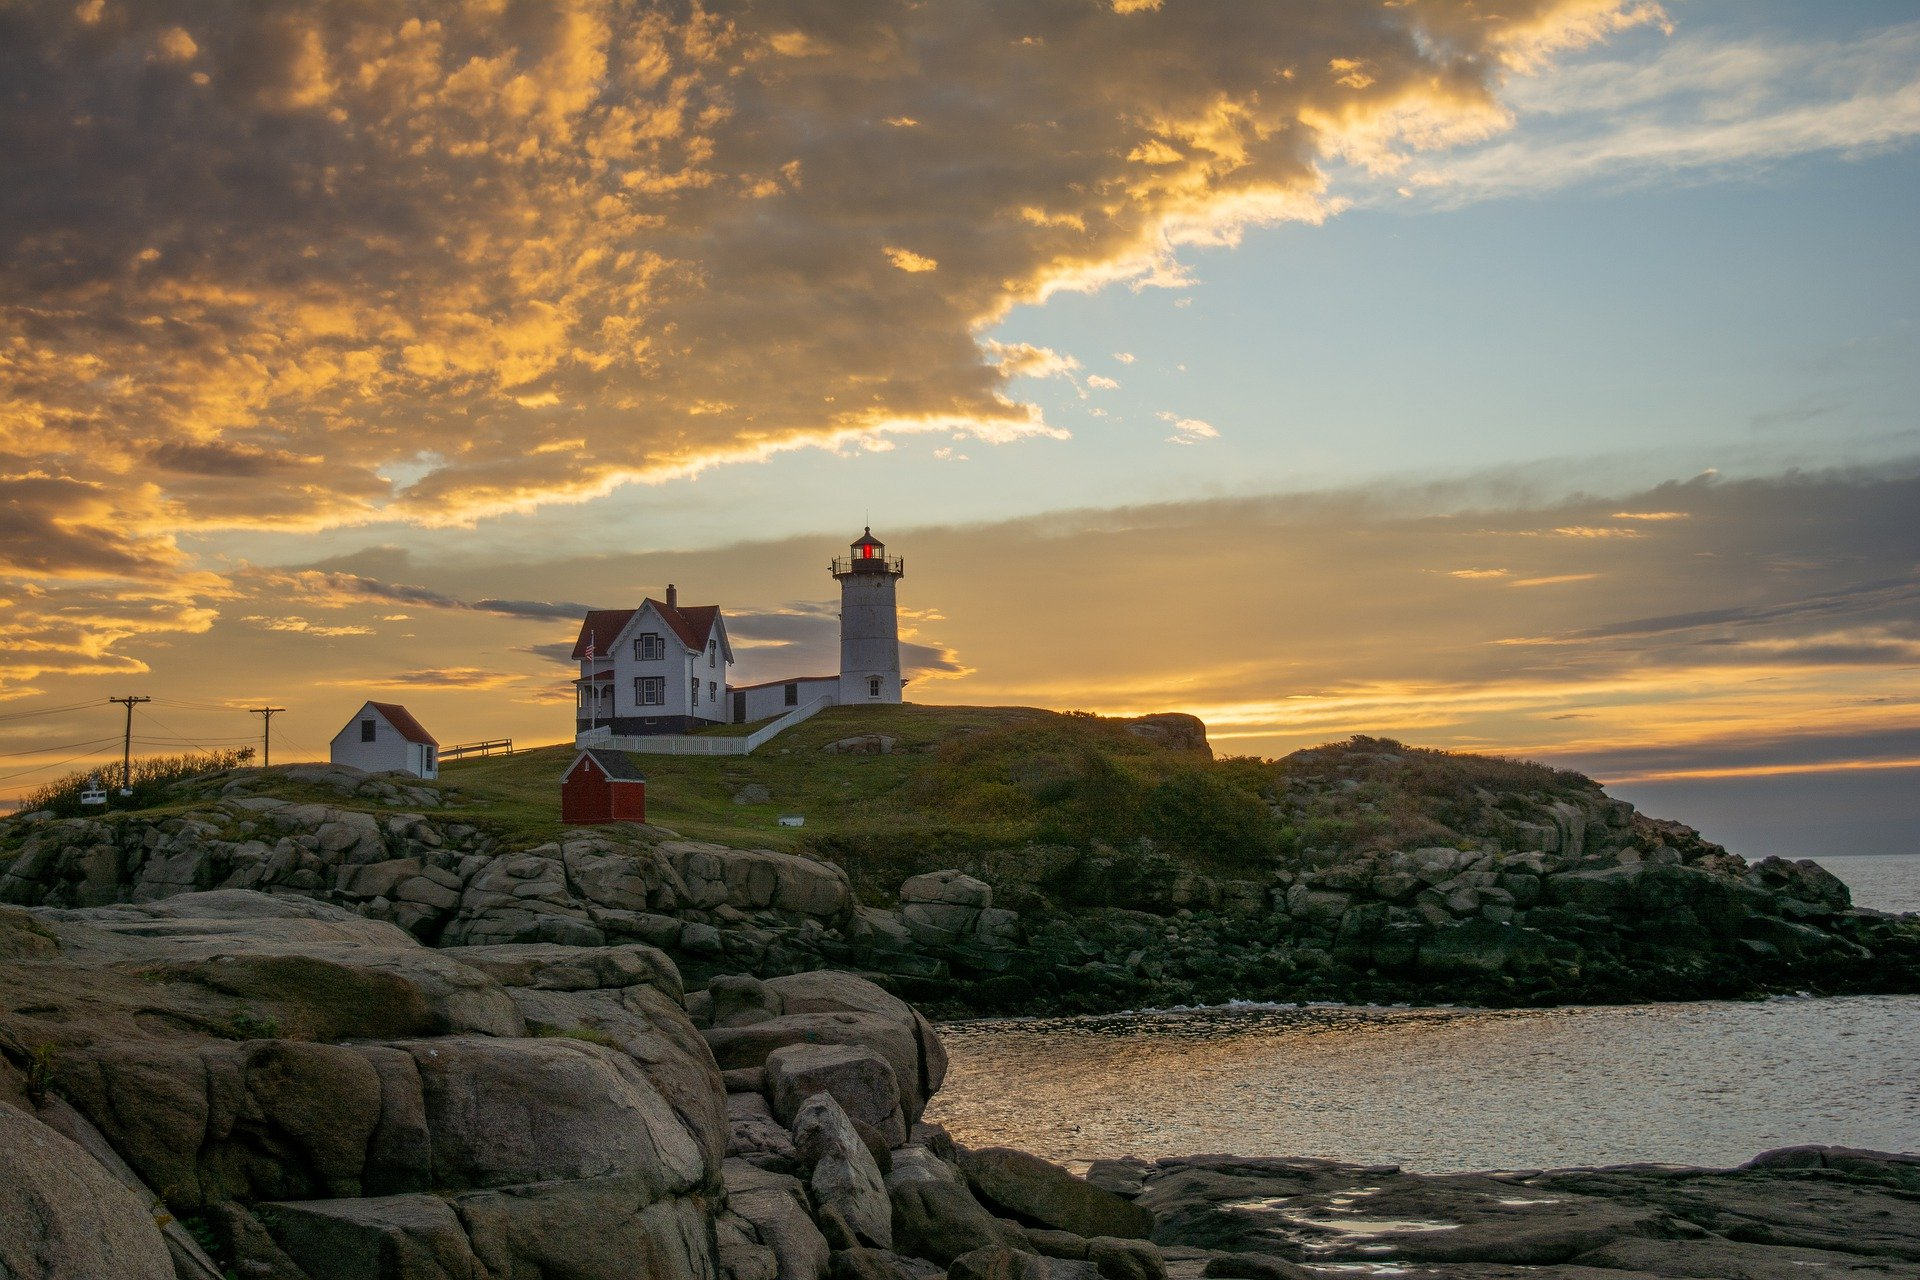 lighthouse at sunset on rocky cliff off coast of New England